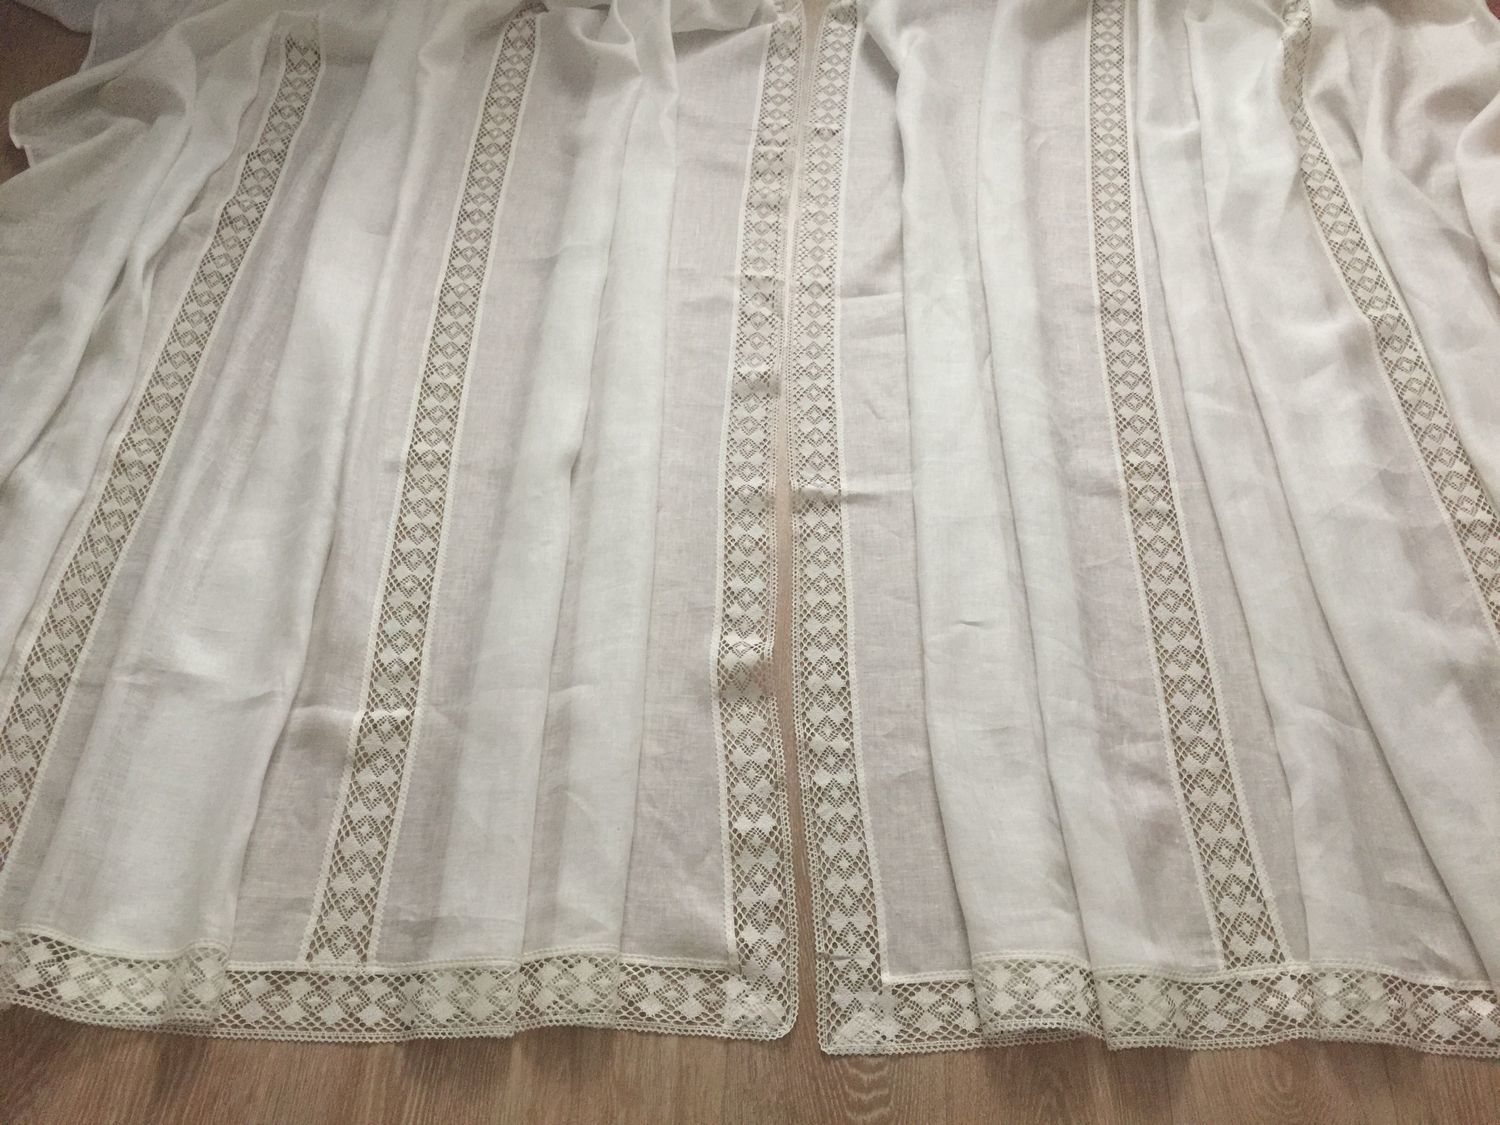 Tulle linen 'Air by using hemstitch' width 4,6 m, Curtains1, Ivanovo,  Фото №1